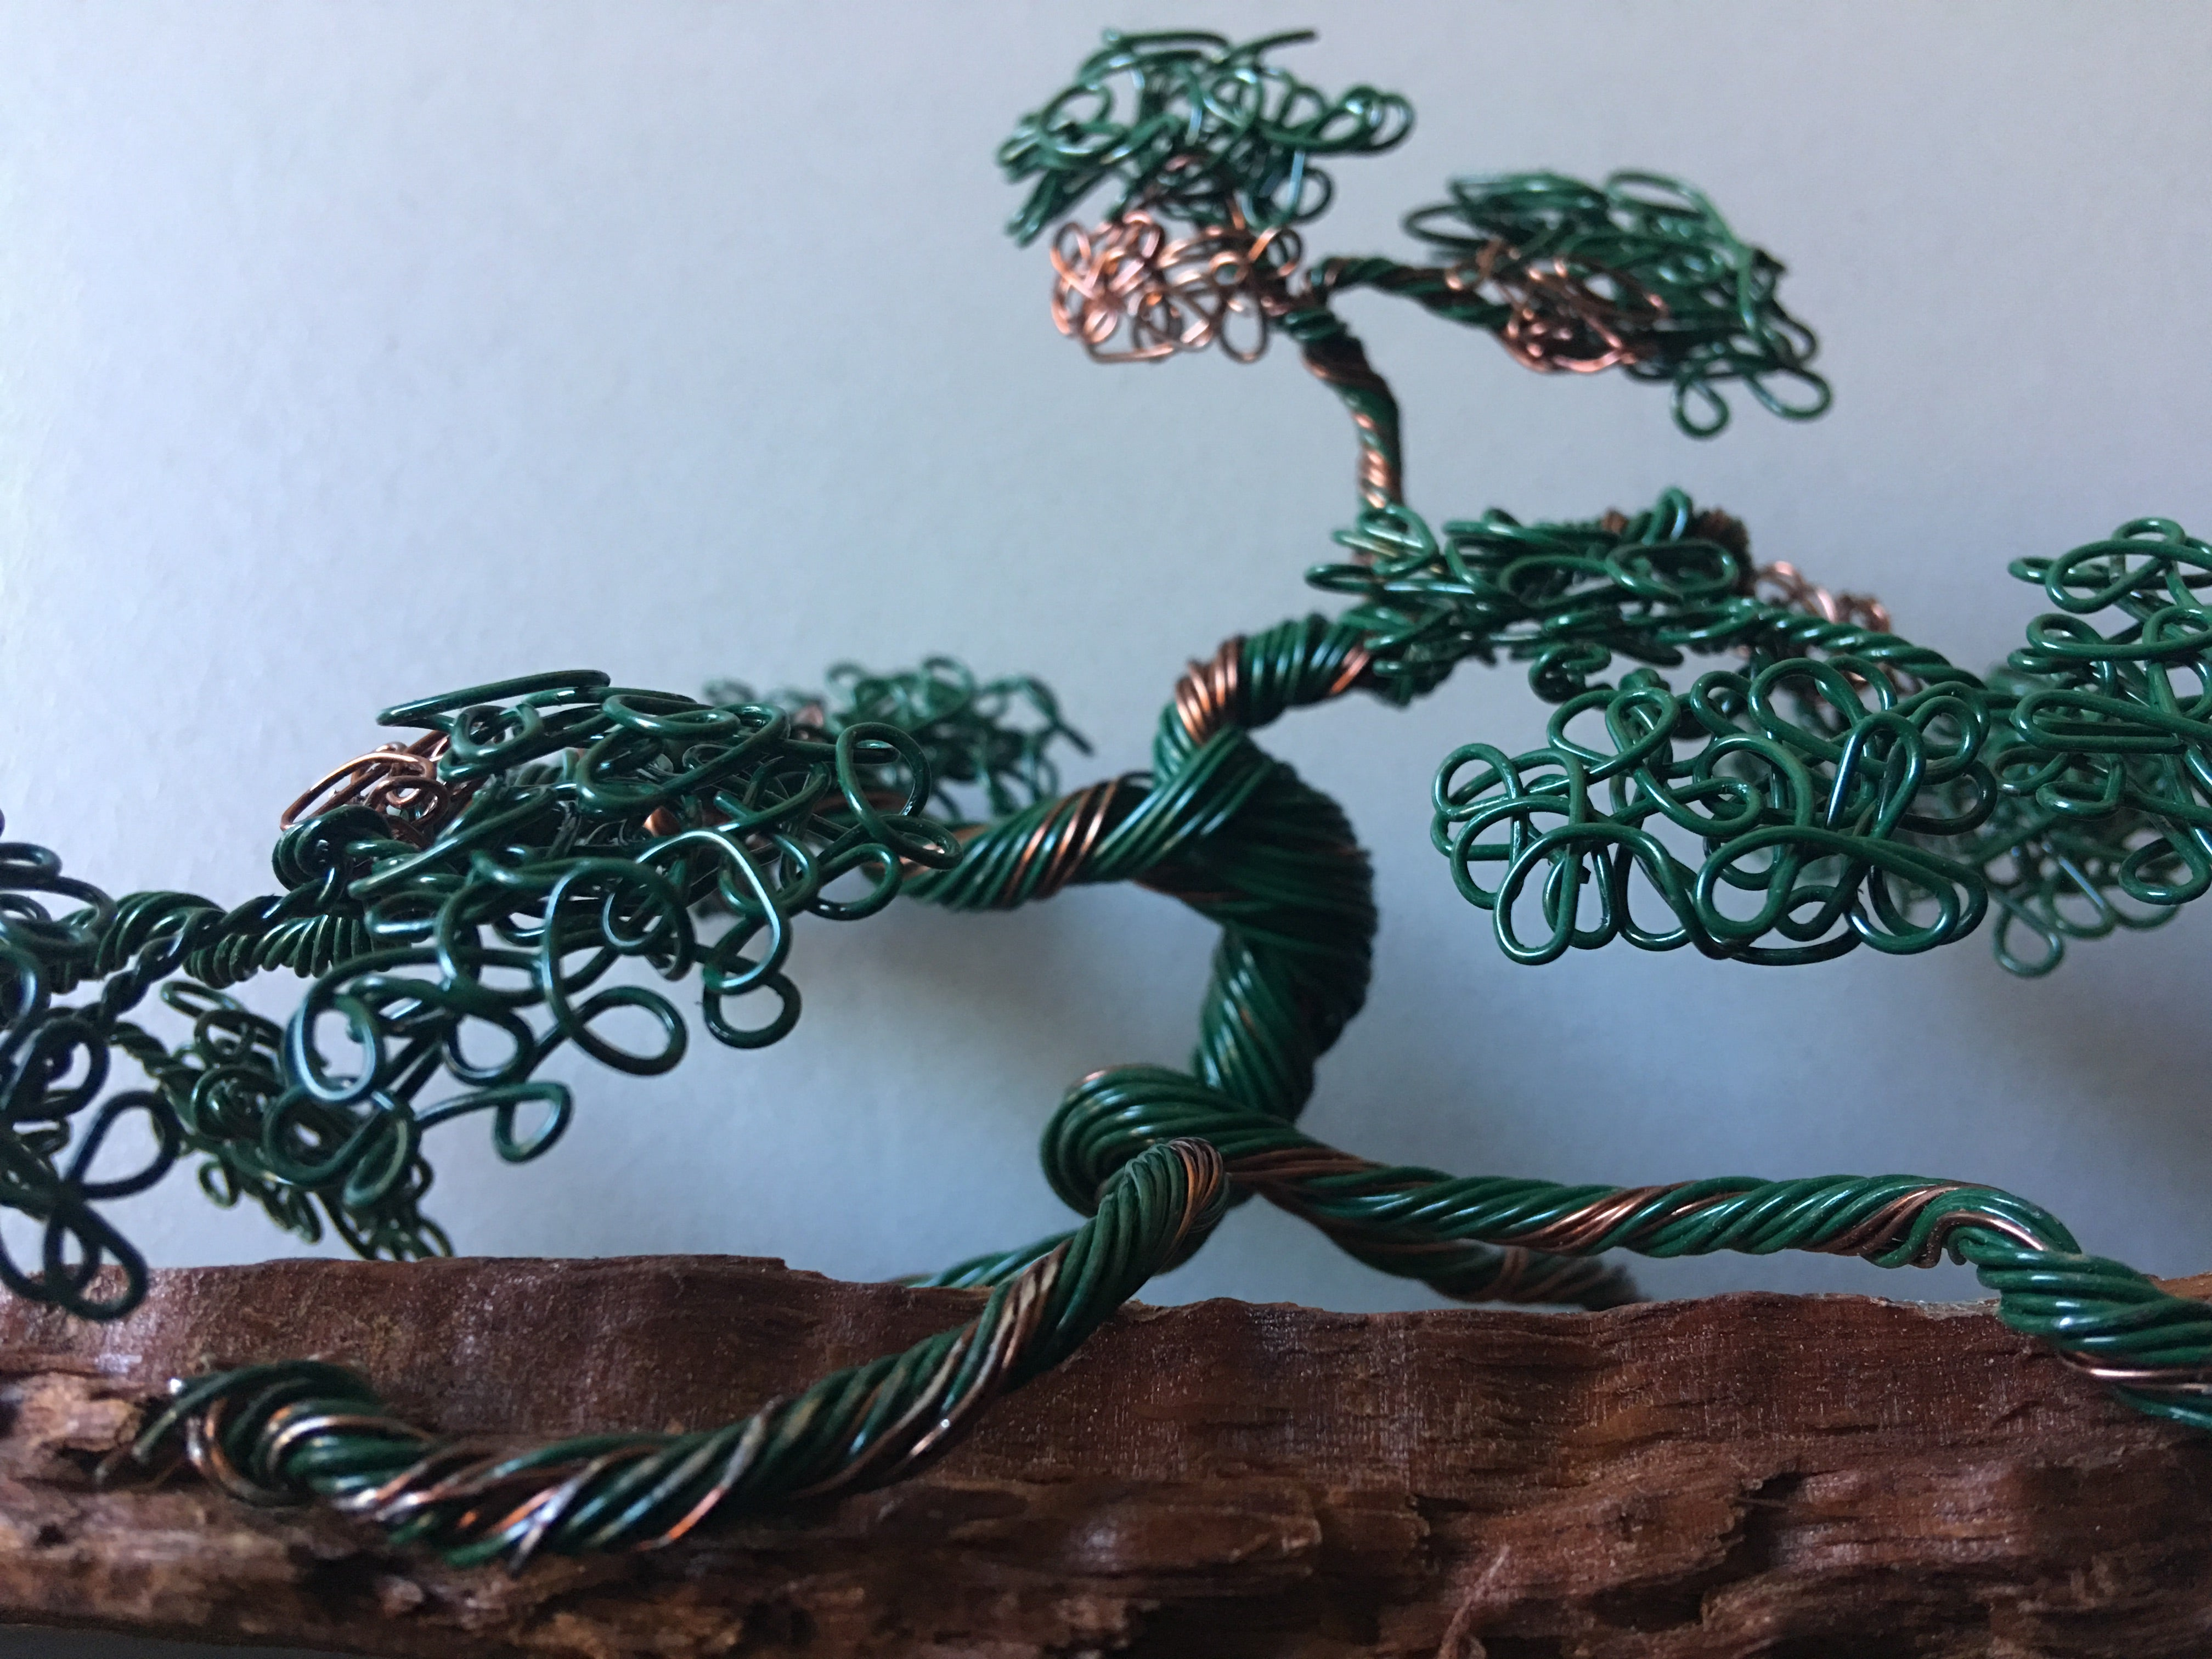 Green and Bronze Bonsai on Wood